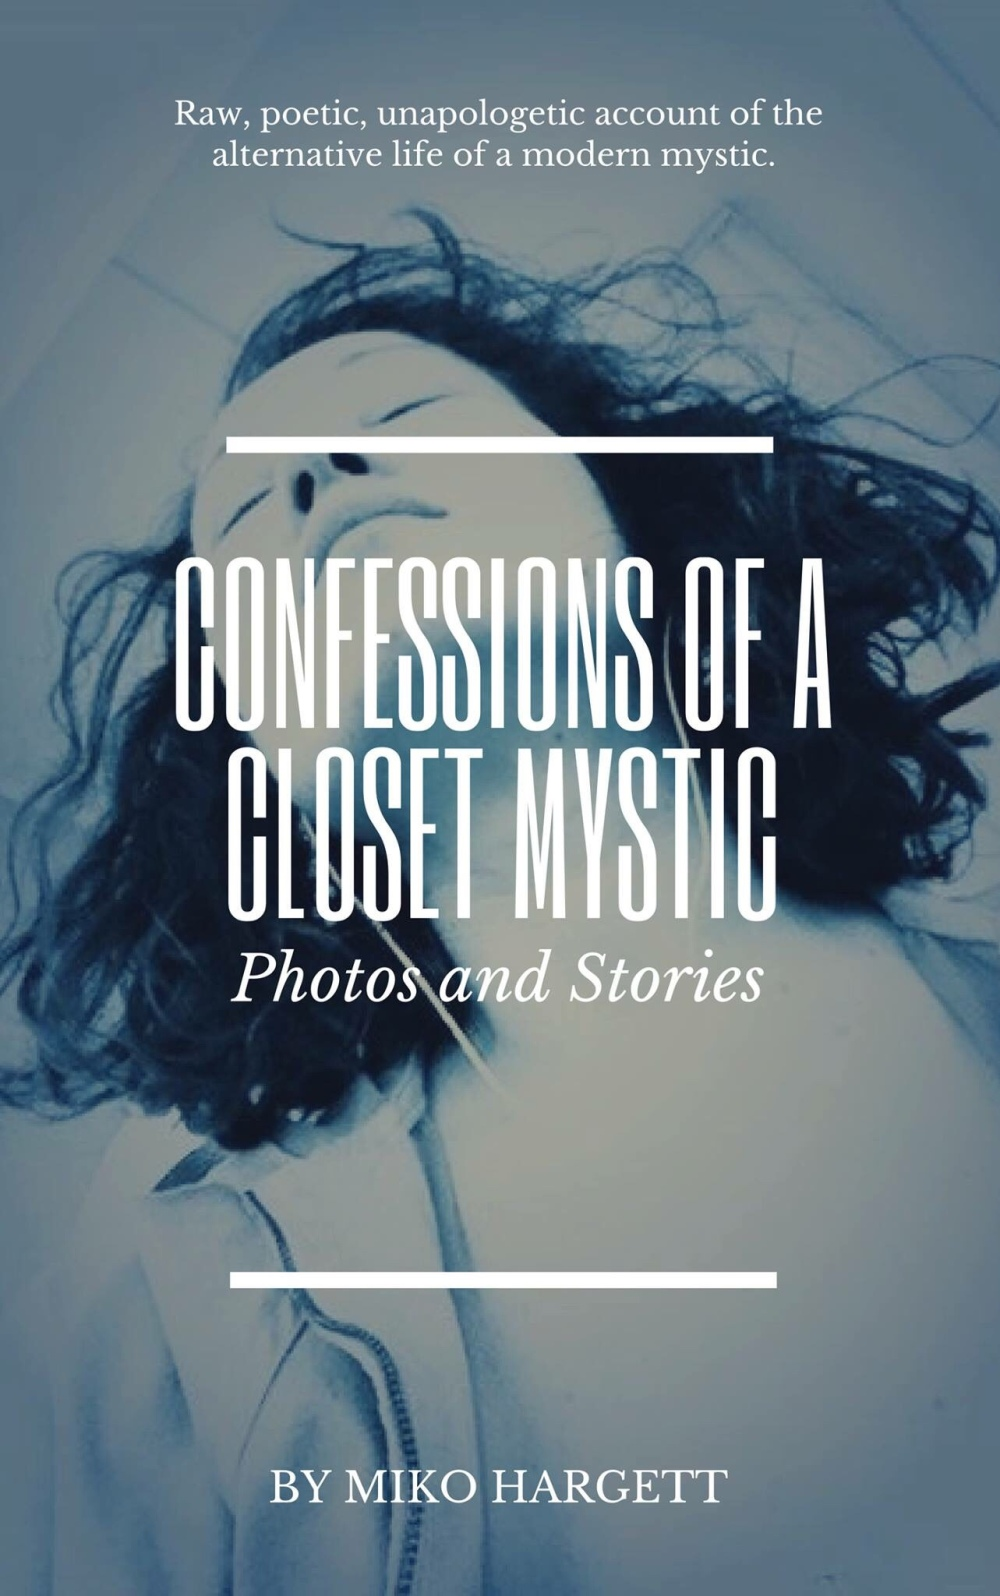 Cover of Confessions of a Closet Mystic by Miko Hargett